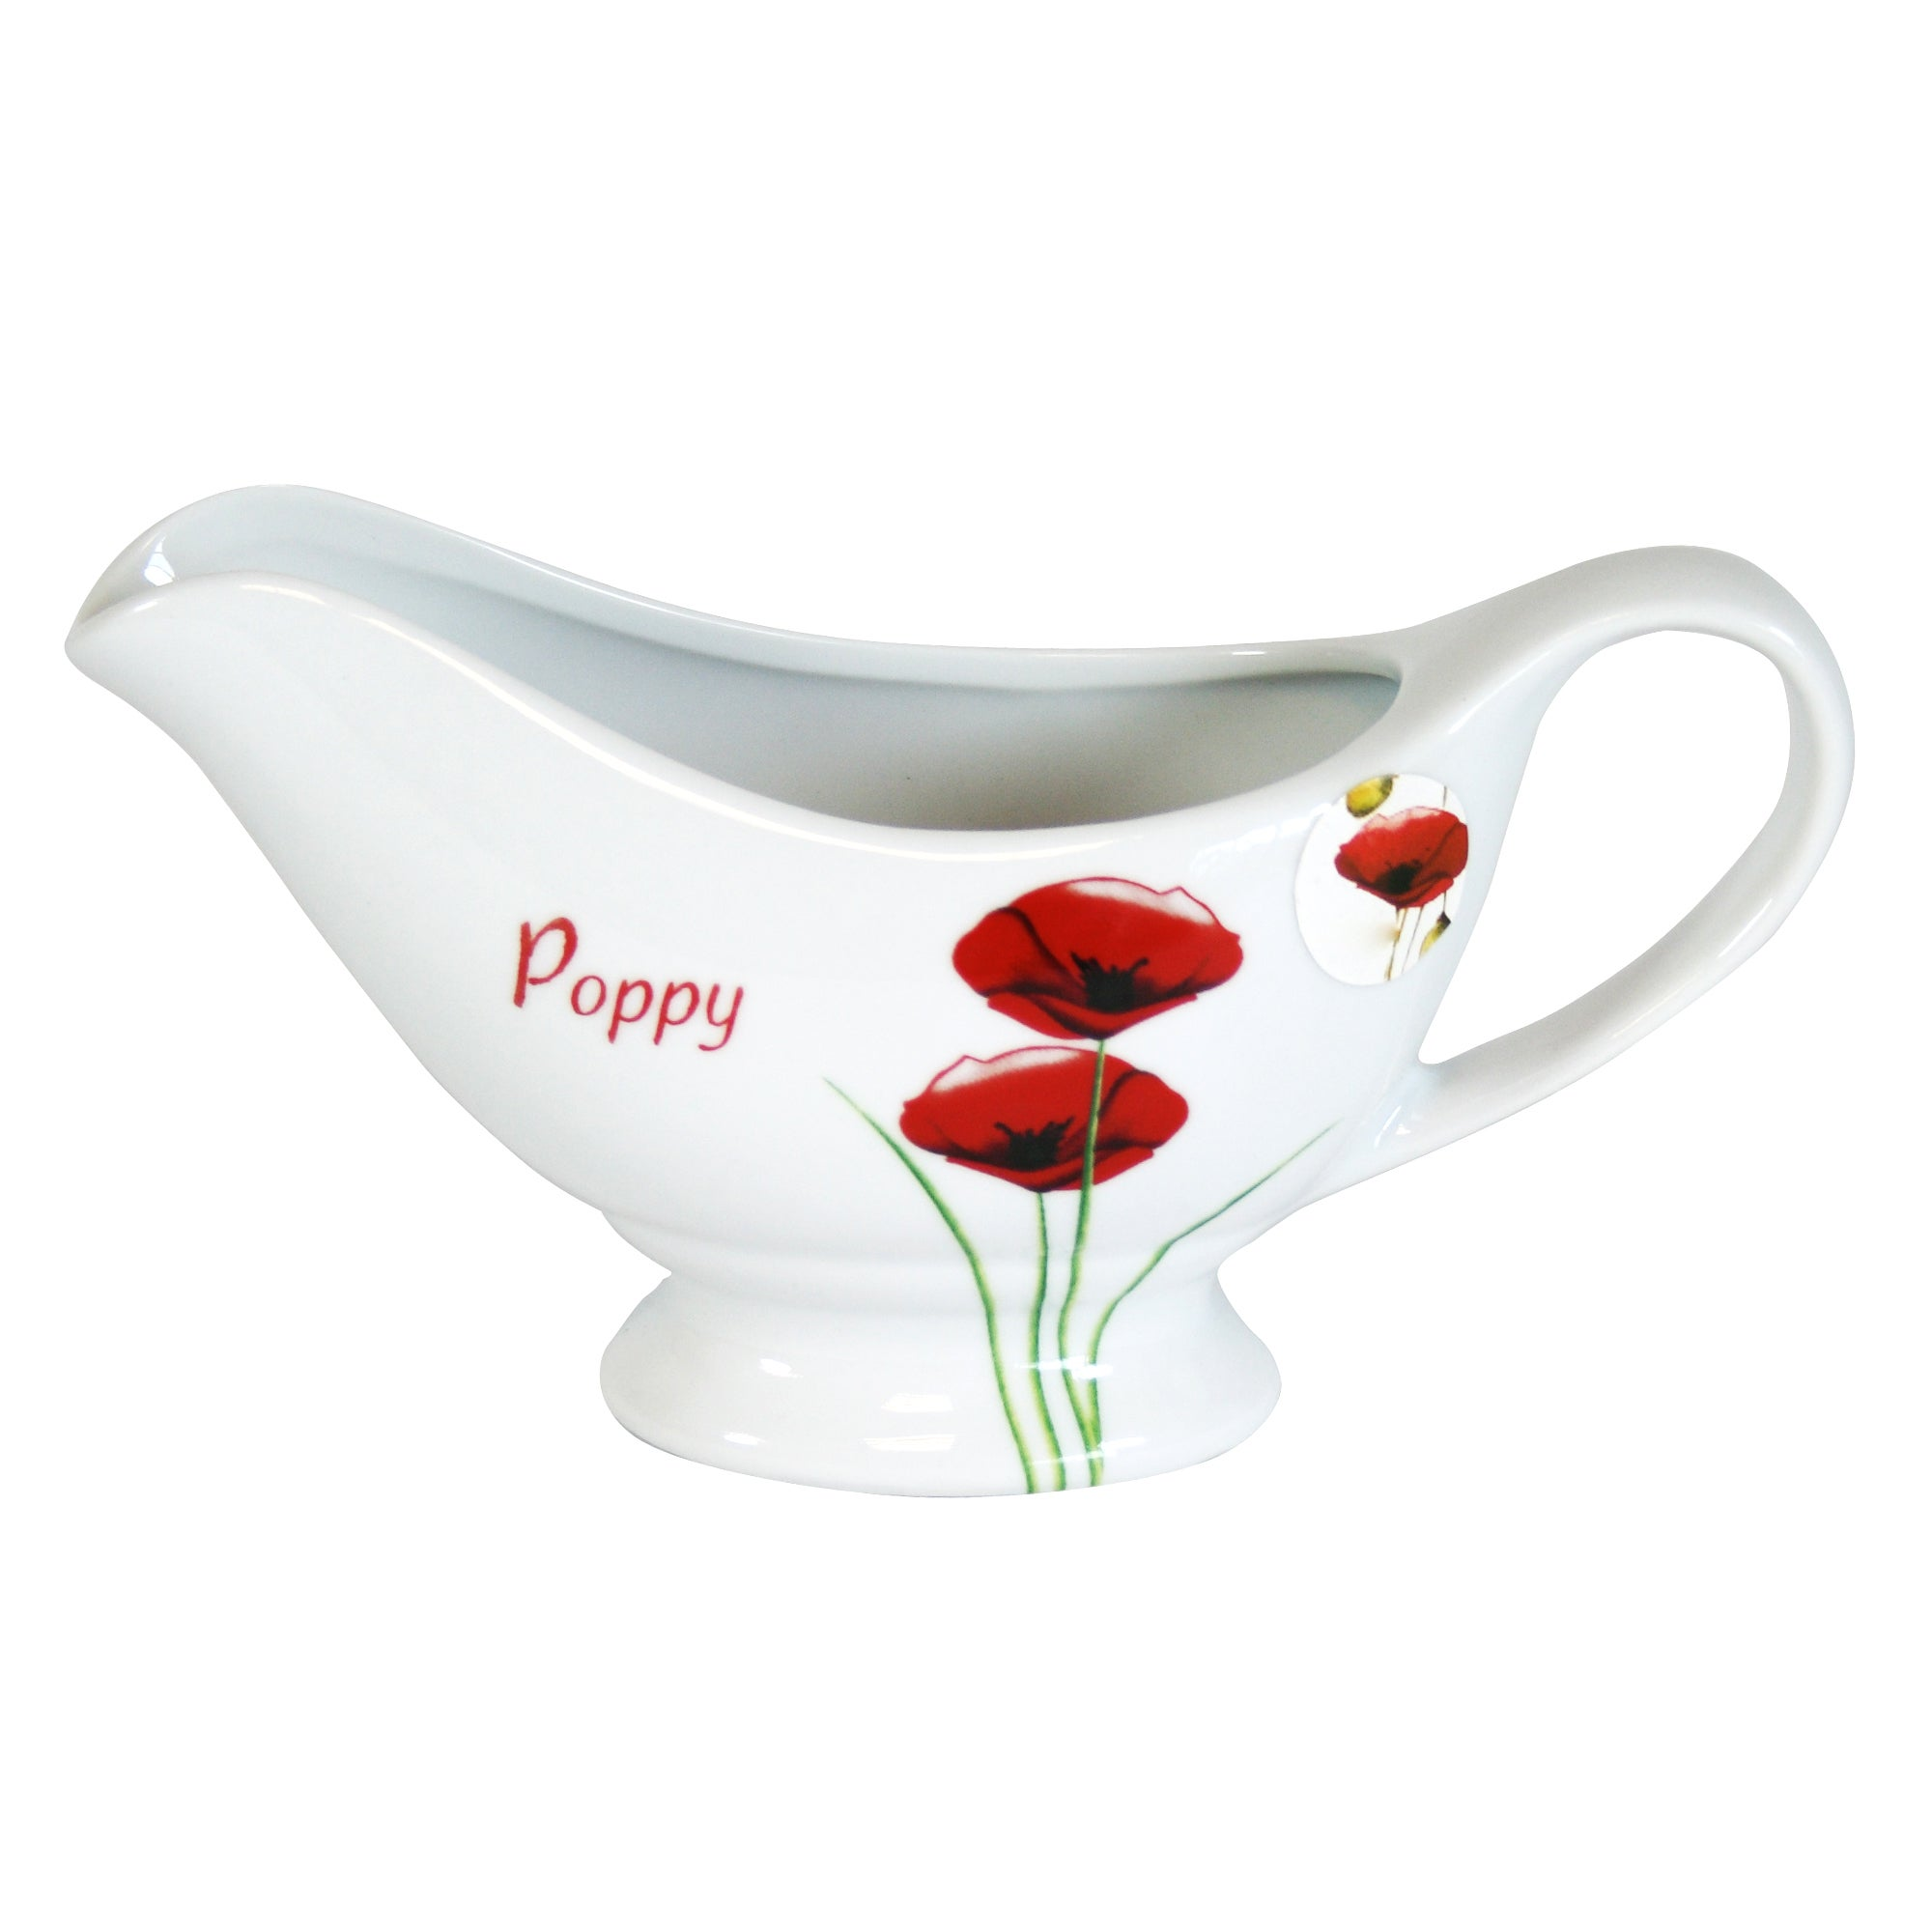 Poppy Collection Gravy Boat